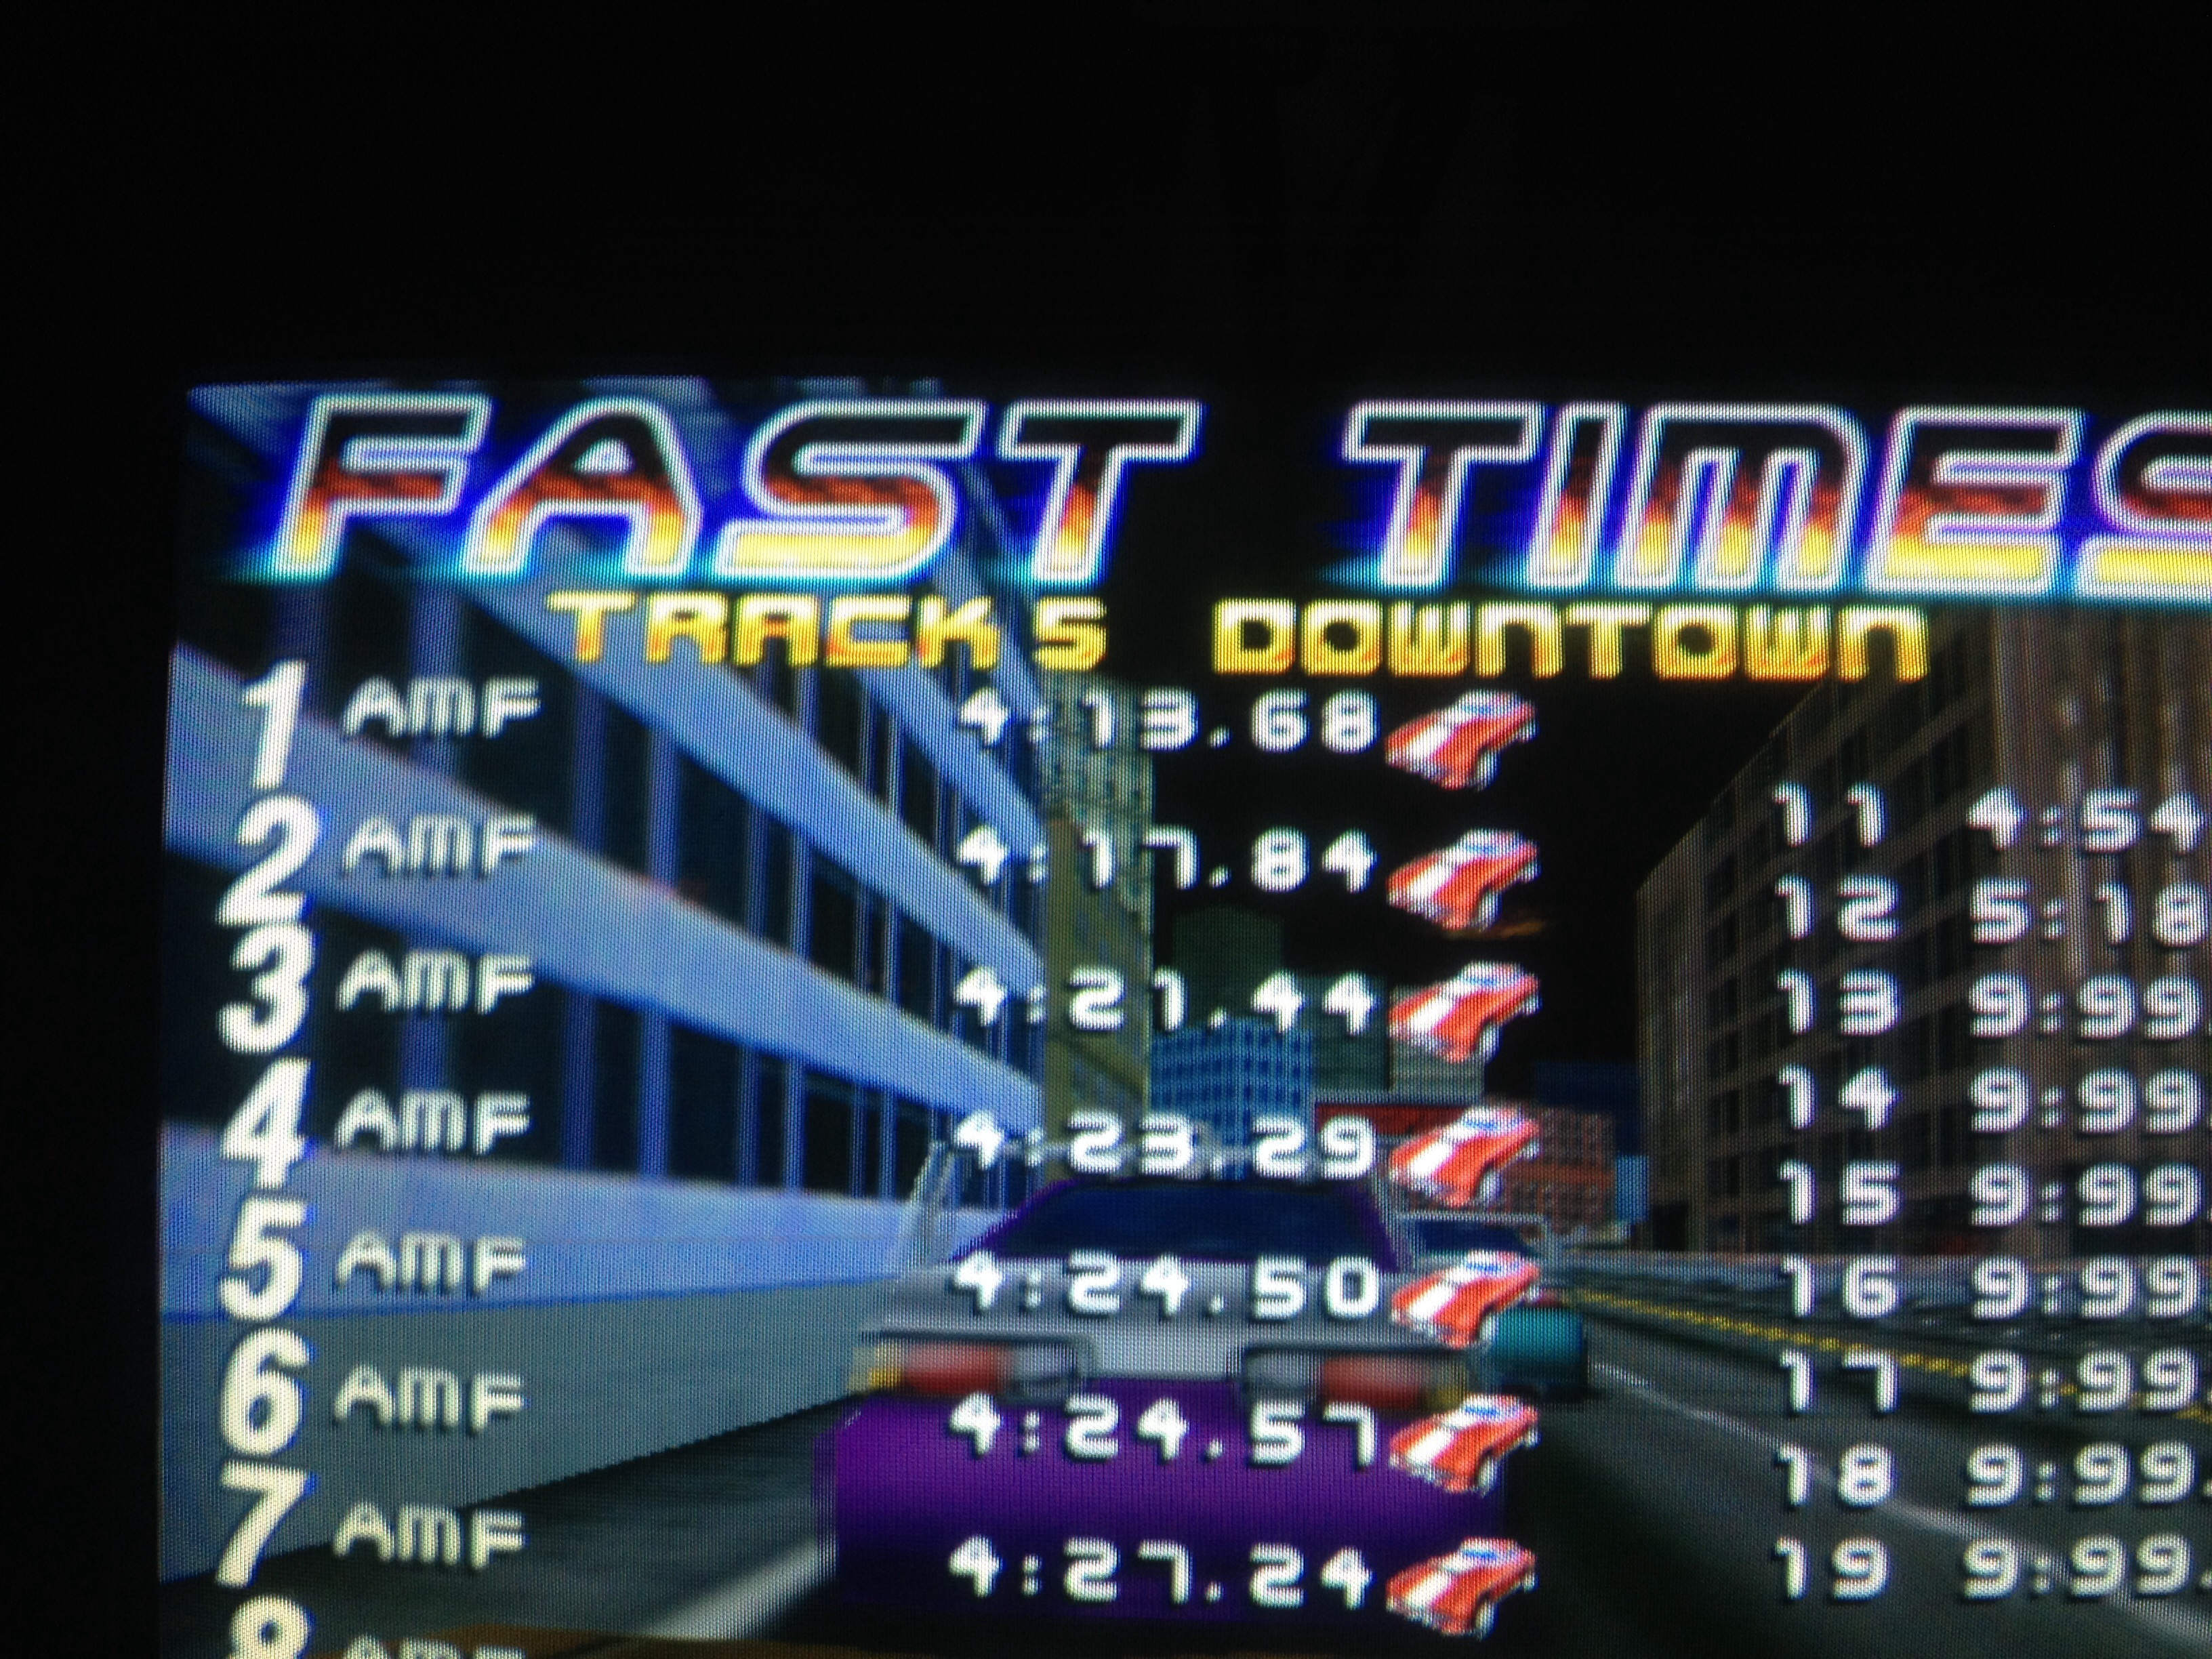 San Francisco Rush: The Rock [Track 5] time of 0:04:13.68